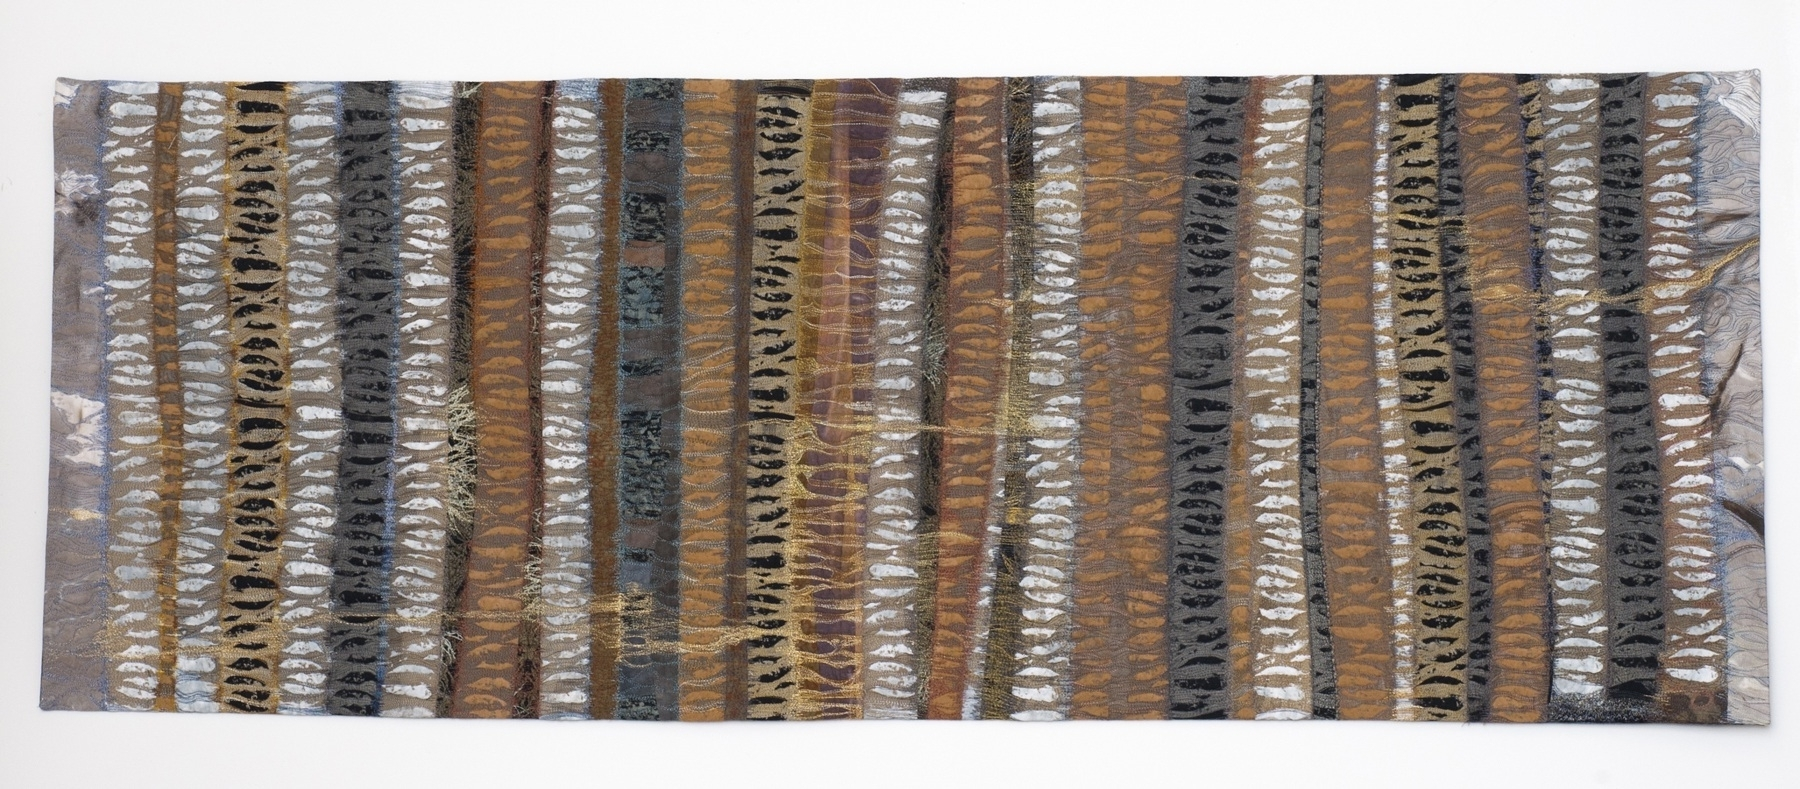 Most Recently Released Fabric Art Wall Hangings Intended For Menupause » Blog Archive » Lonni Rossi, Textile Artist (View 10 of 15)